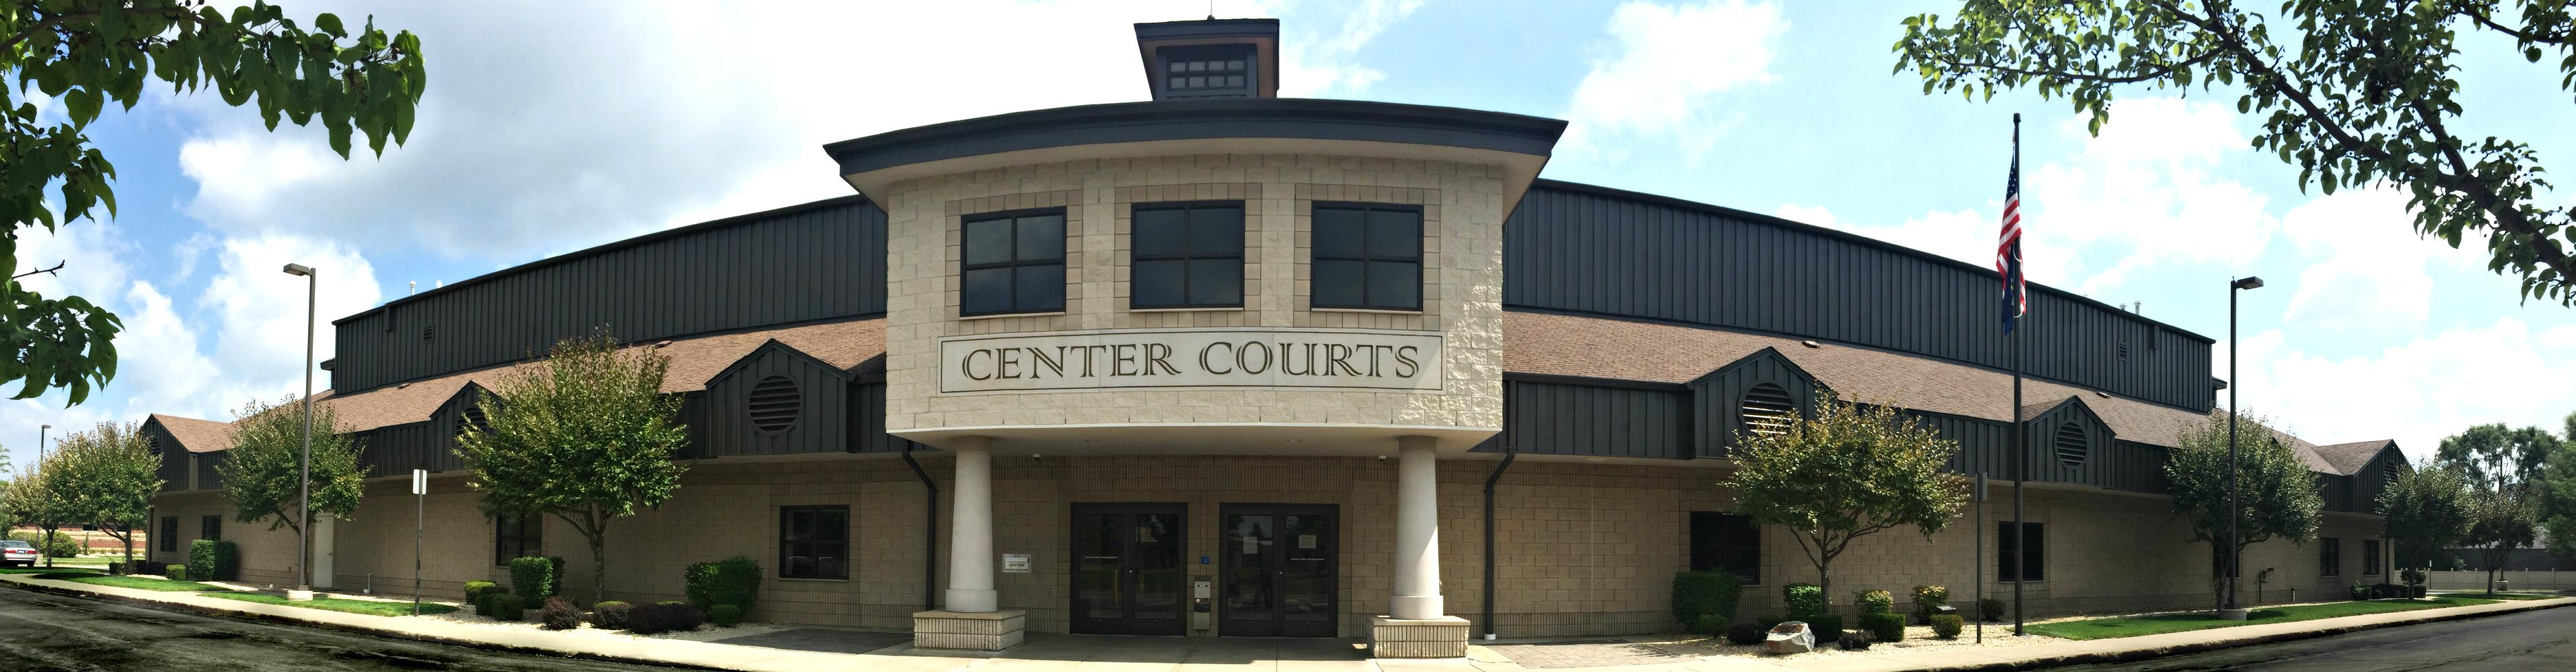 Center Courts Building - Copy